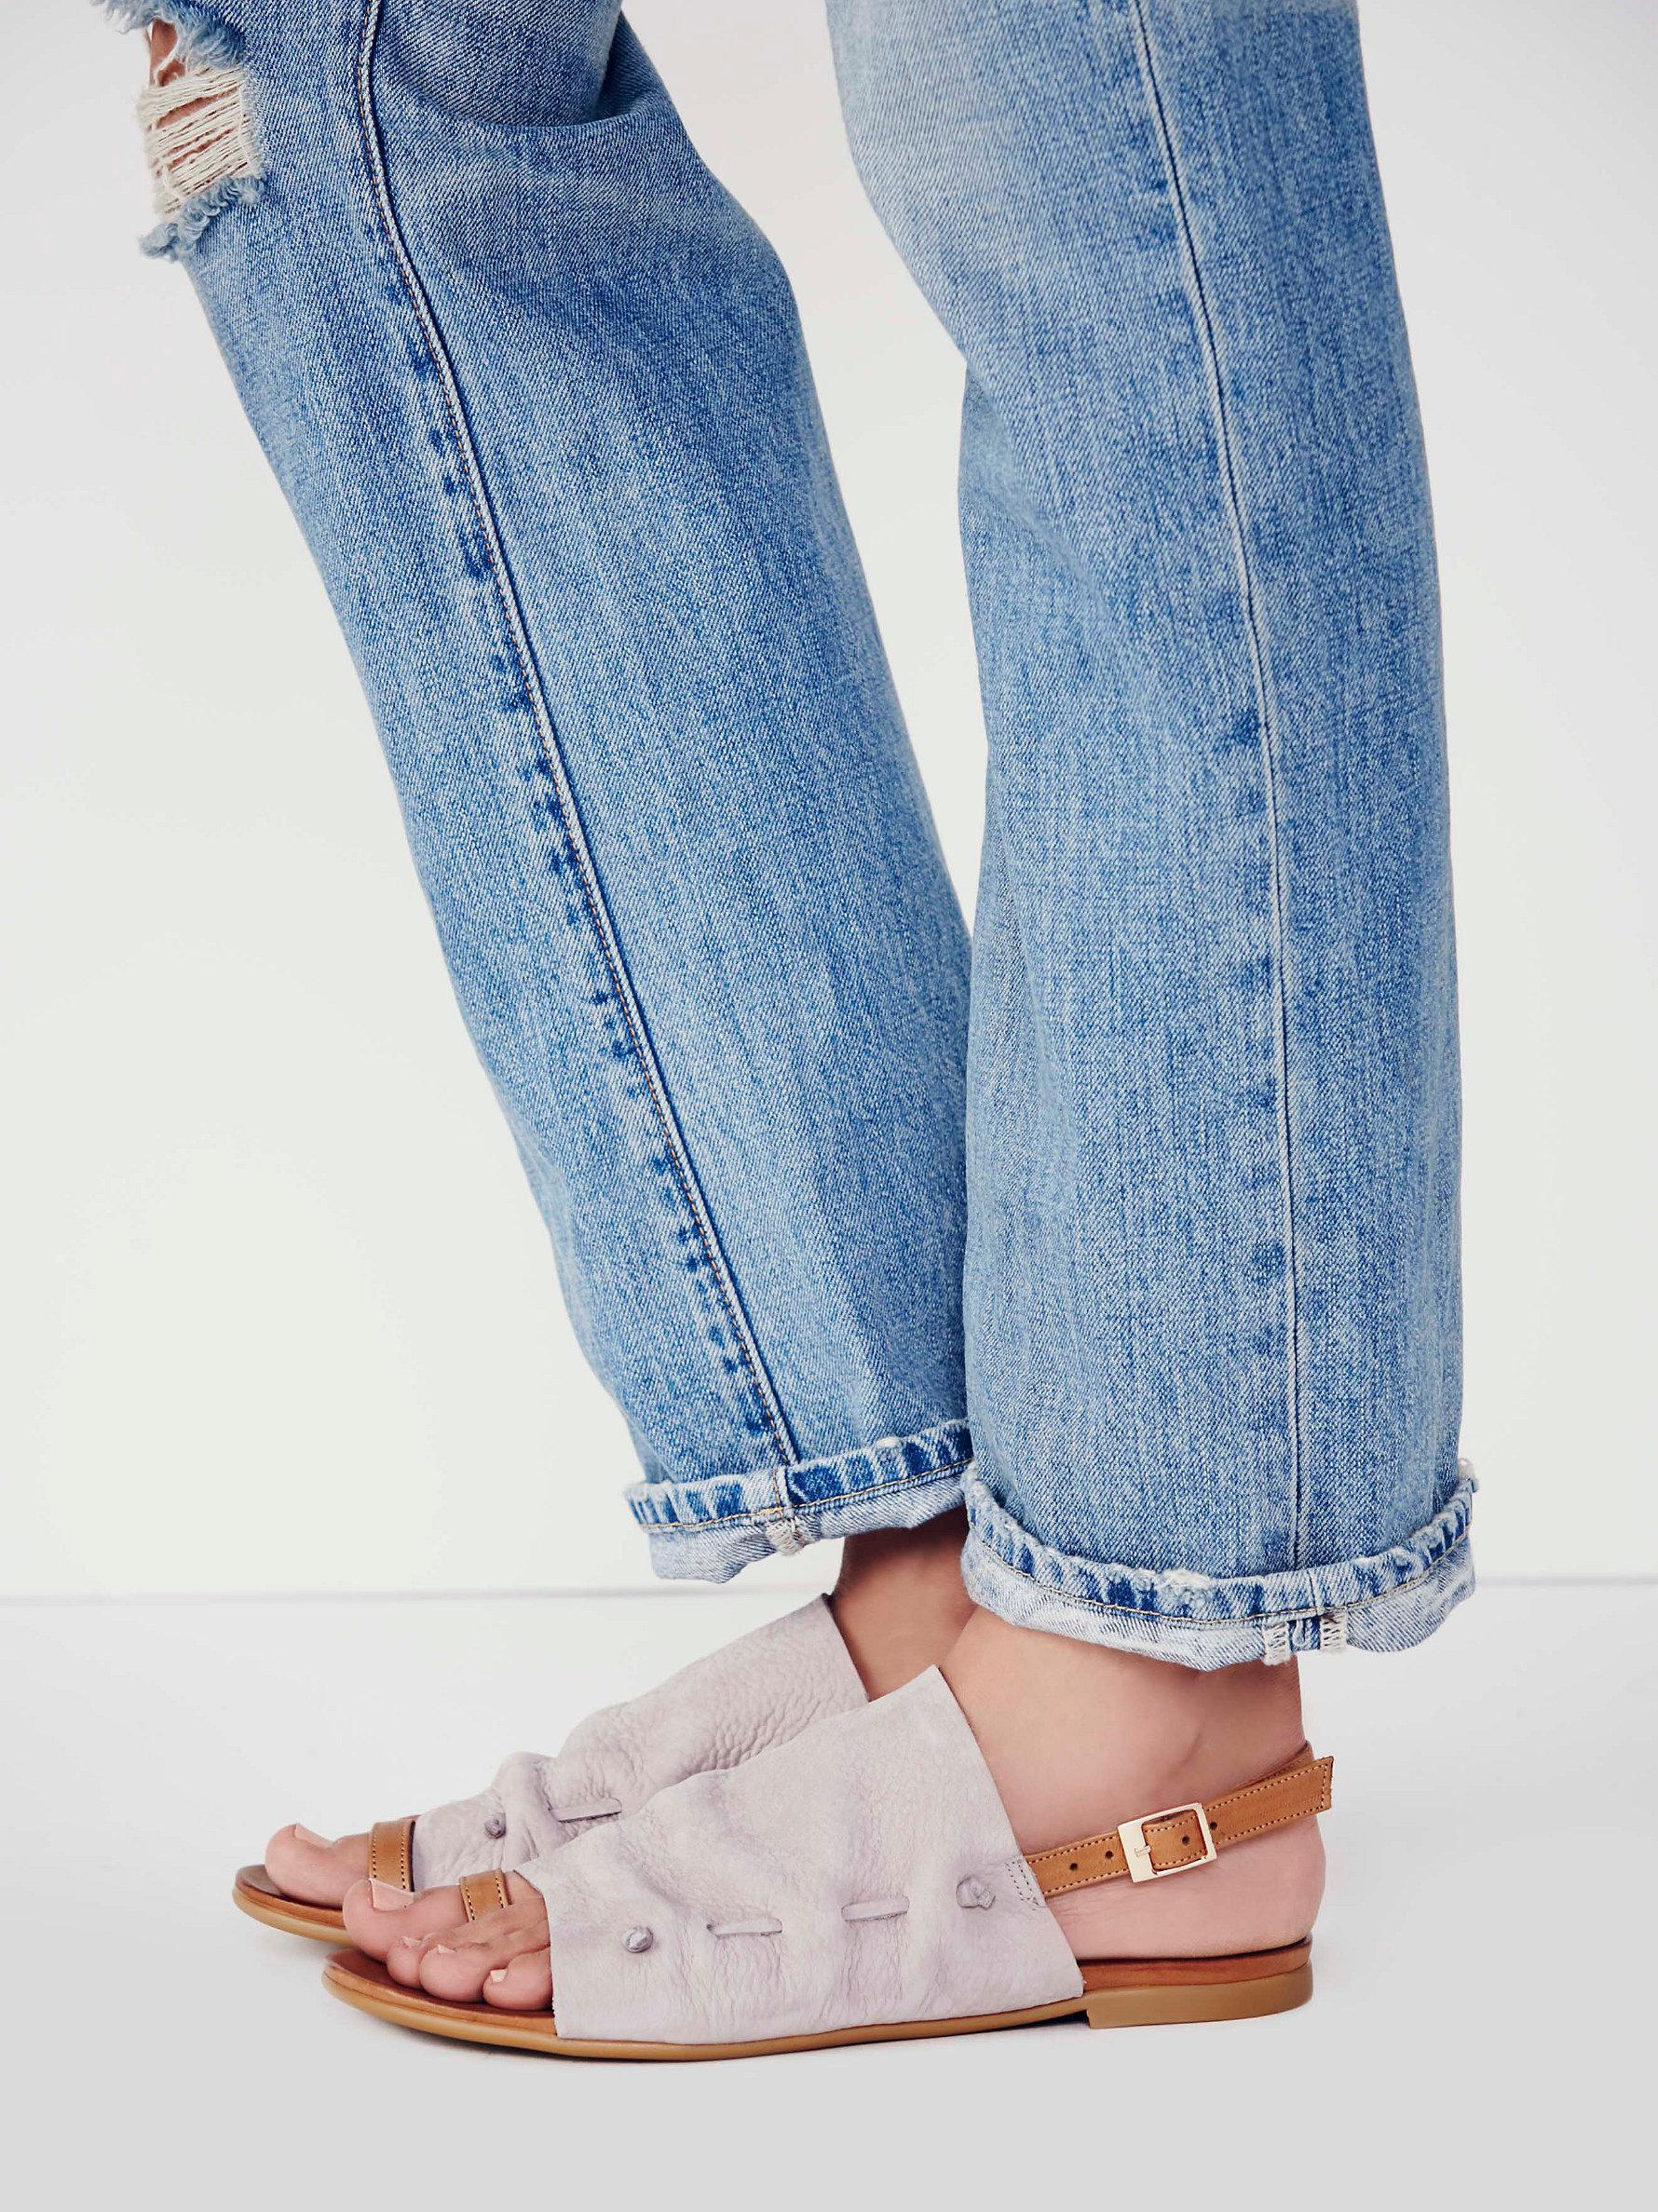 Lake House Sling Back Sandal factory outlet cheap online clearance with mastercard pay with paypal cheap online free shipping real iXm9O1enV